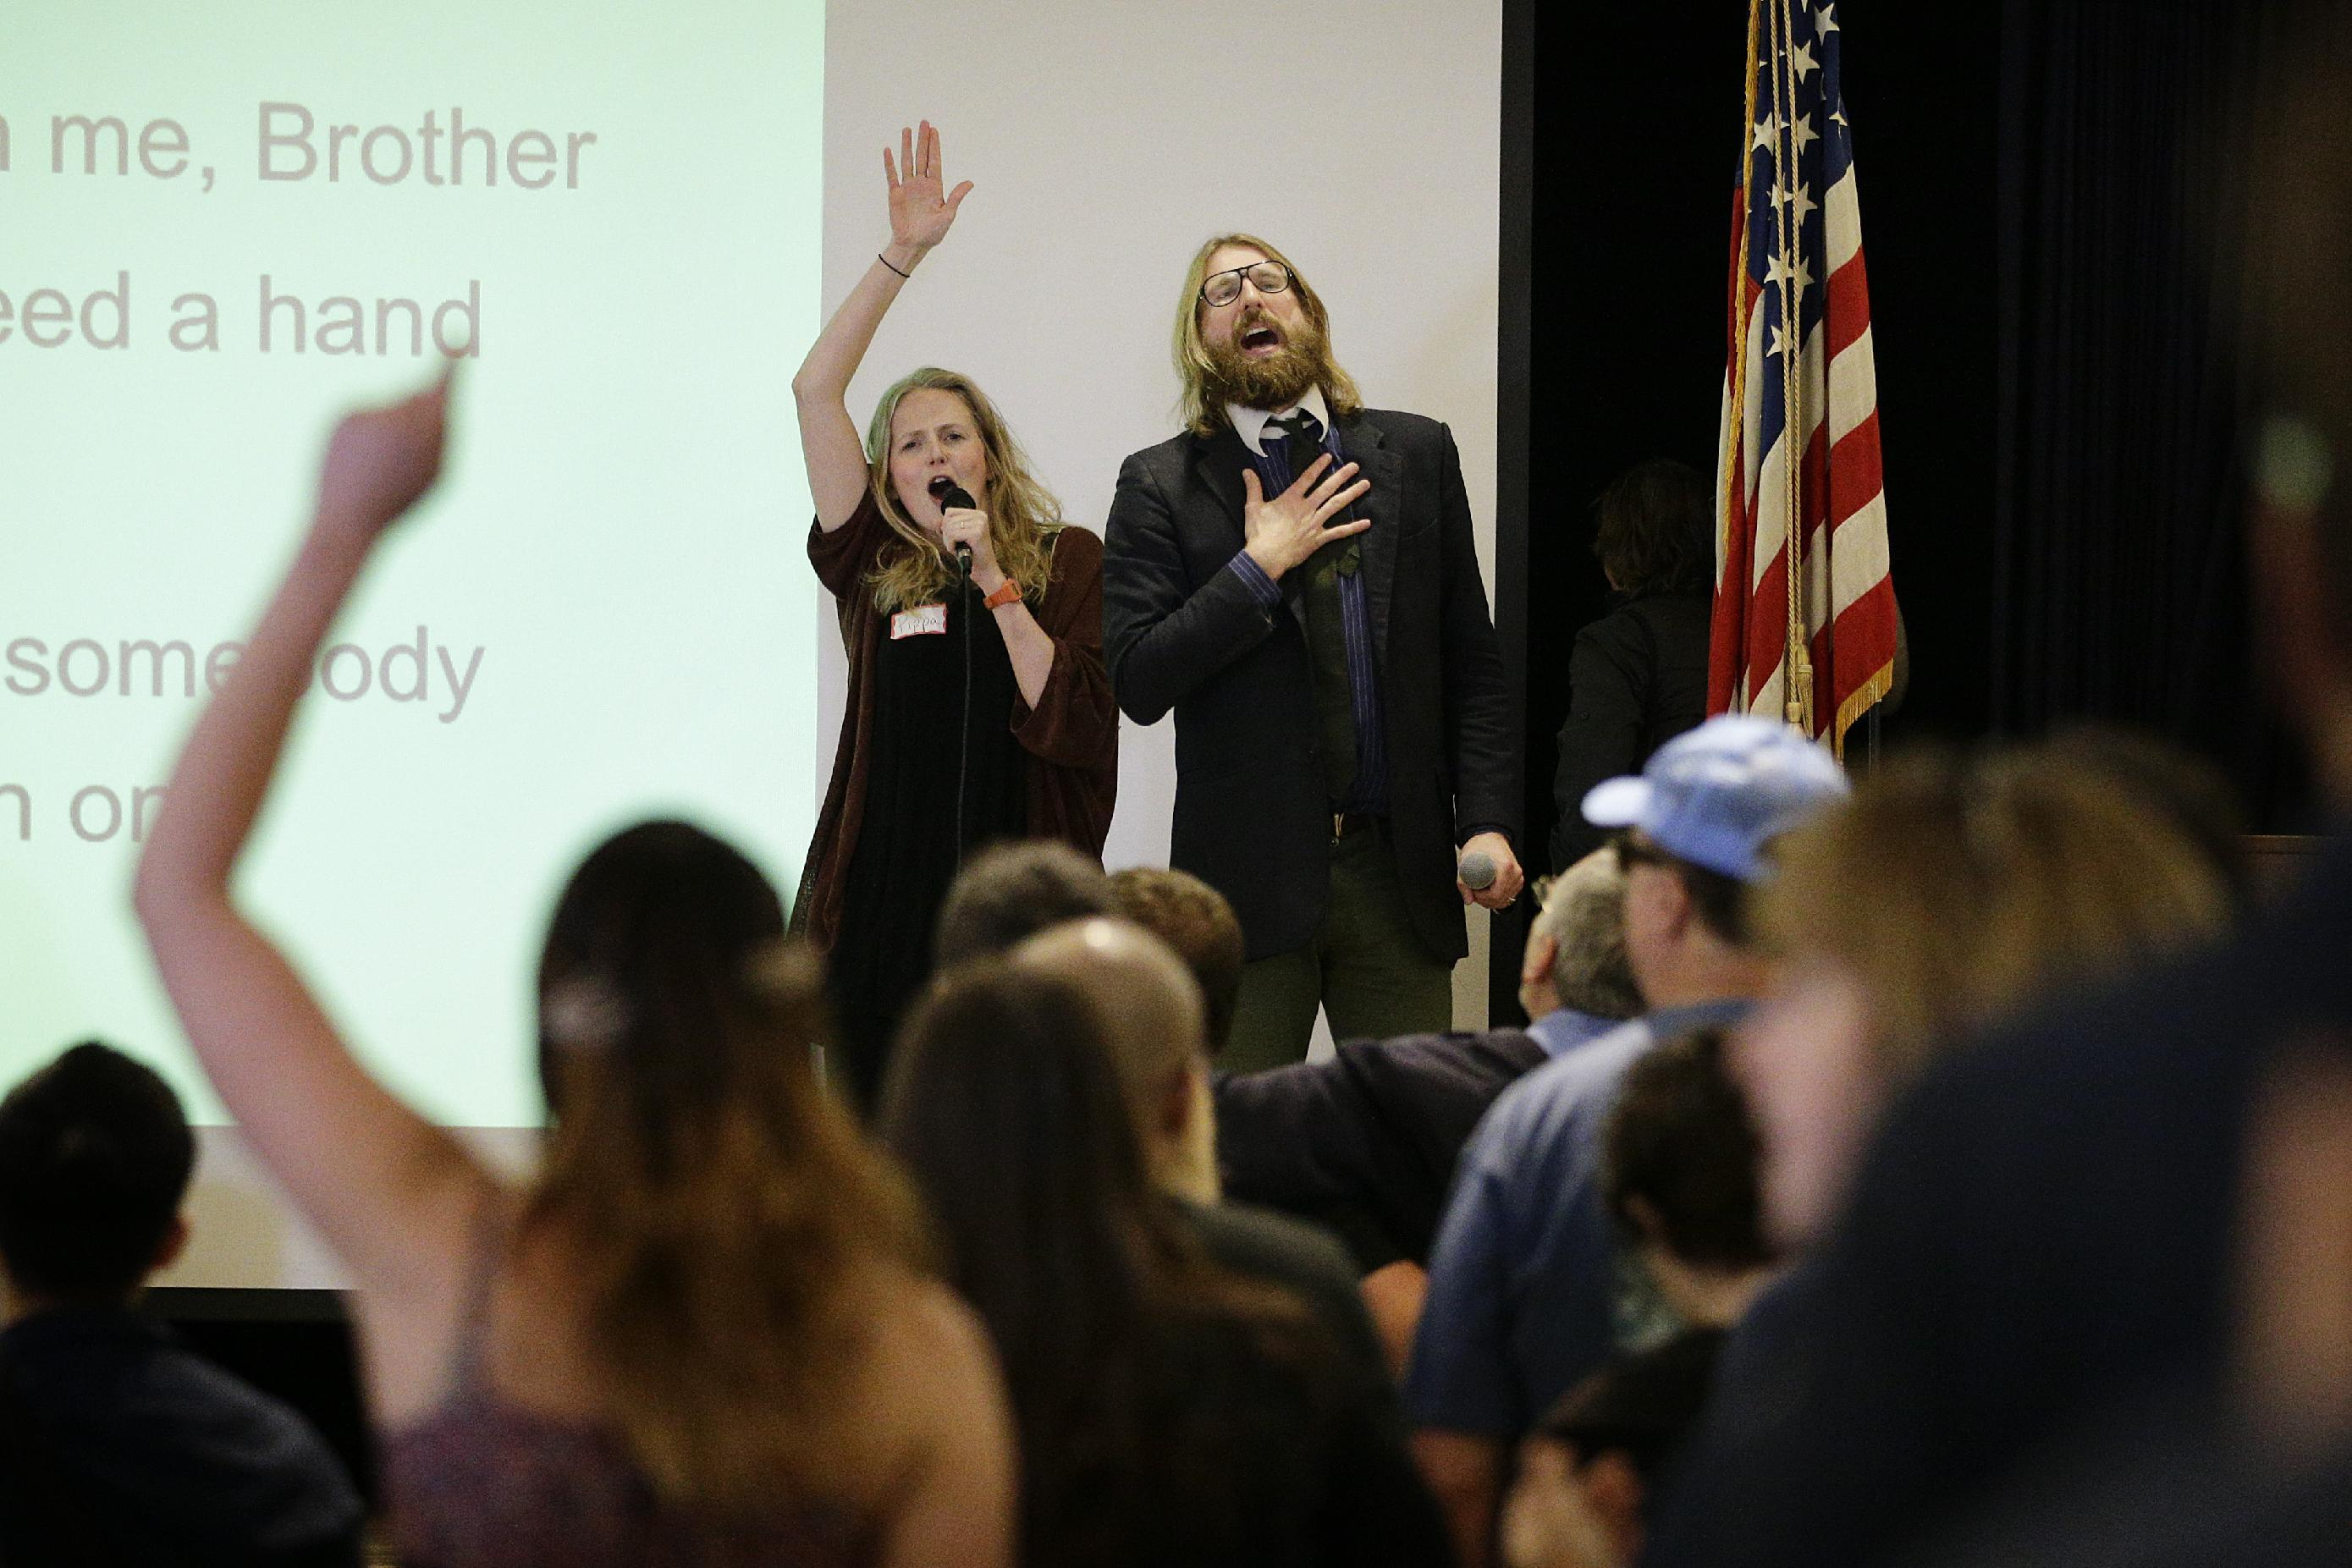 British comedians and co-founders of the Sunday Assembly, Sanderson Jones, right, and Pippa Evans sing a song at the Sunday Assembly on Sunday, Nov. 10, 2013, in Los Angeles. A new mega-church movement is generating buzz from London to Los Angeles, but this time it's a belief in non-belief that's drawing crowds on Sunday mornings. Sunday Assembly began in London in January and soared in popularity among atheists looking for a place to air their views with other likeminded people and now the concept has taken hold across the pond. (AP Photo/Jae C. Hong)